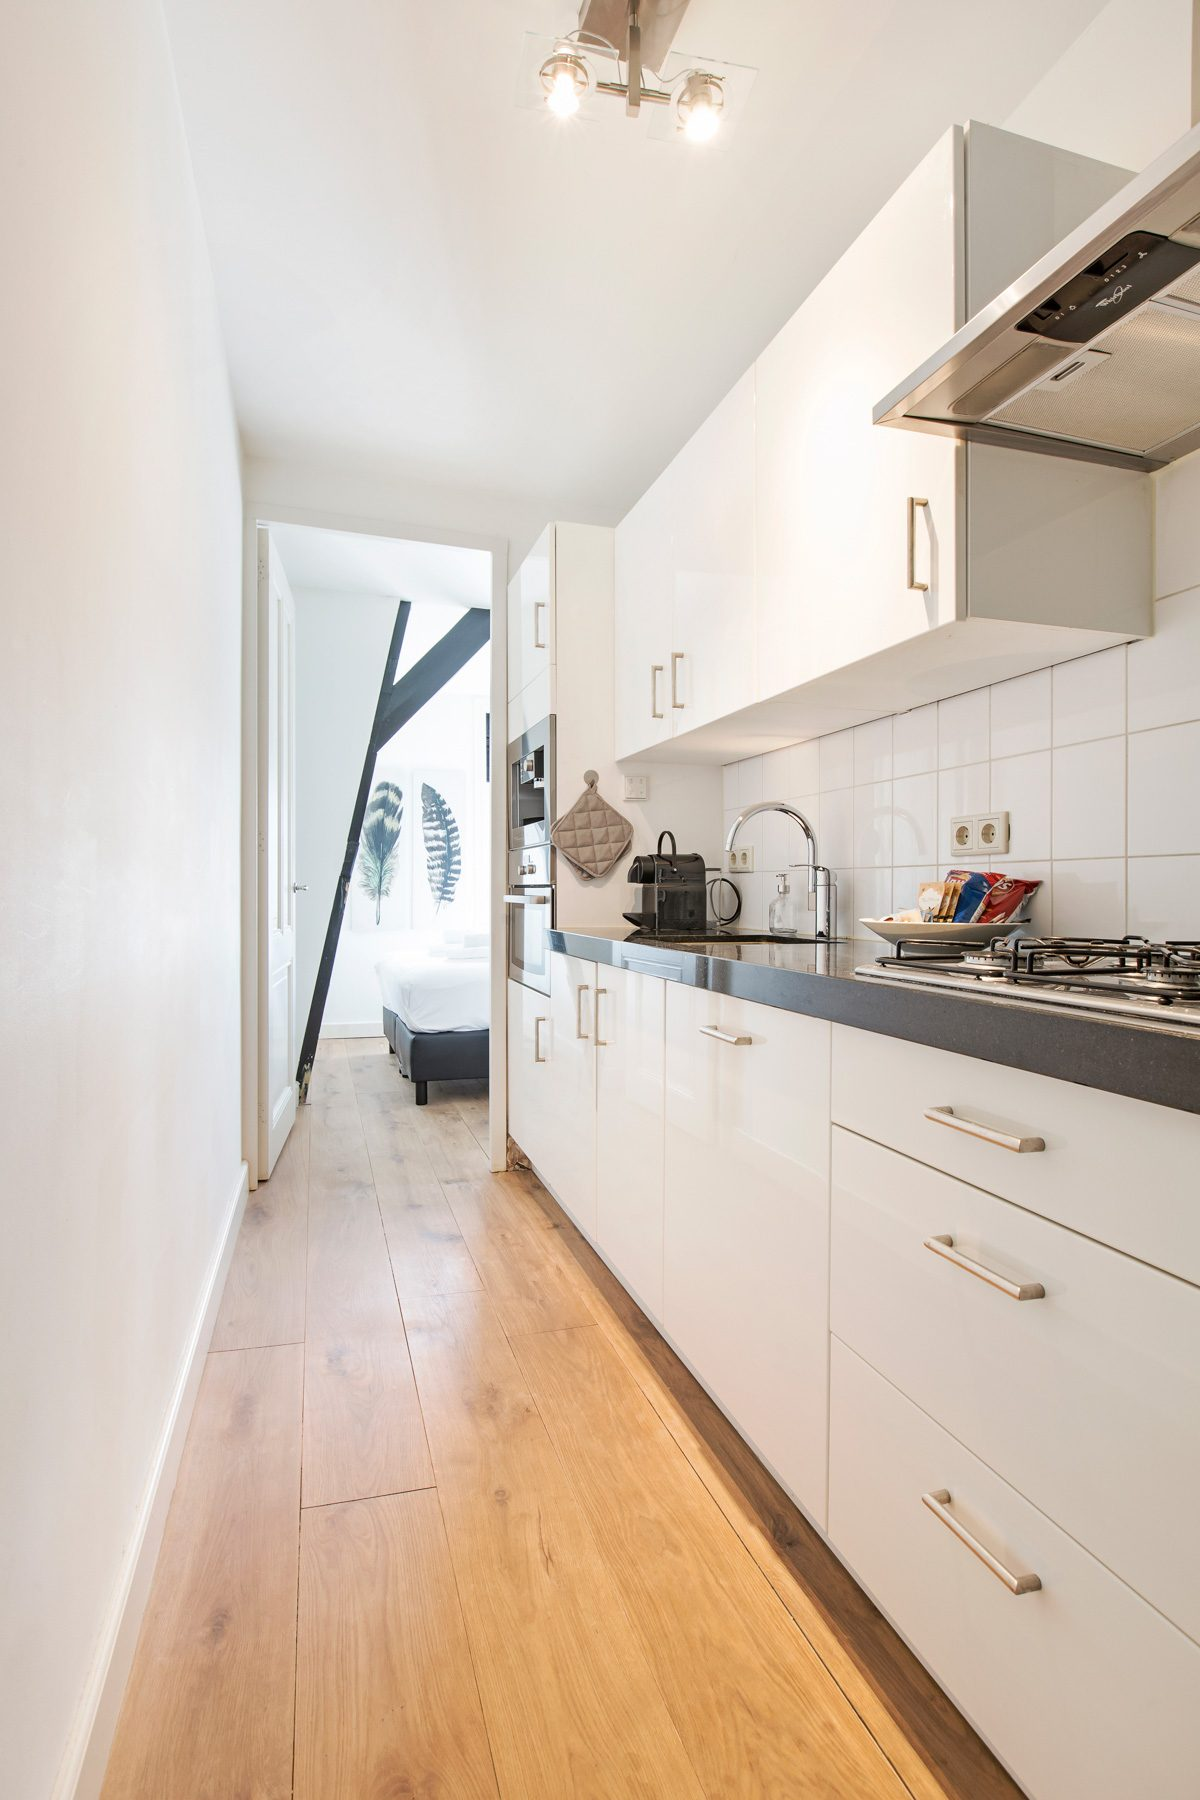 Kitchen at Sarphati Apartments, Centre, Amsterdam